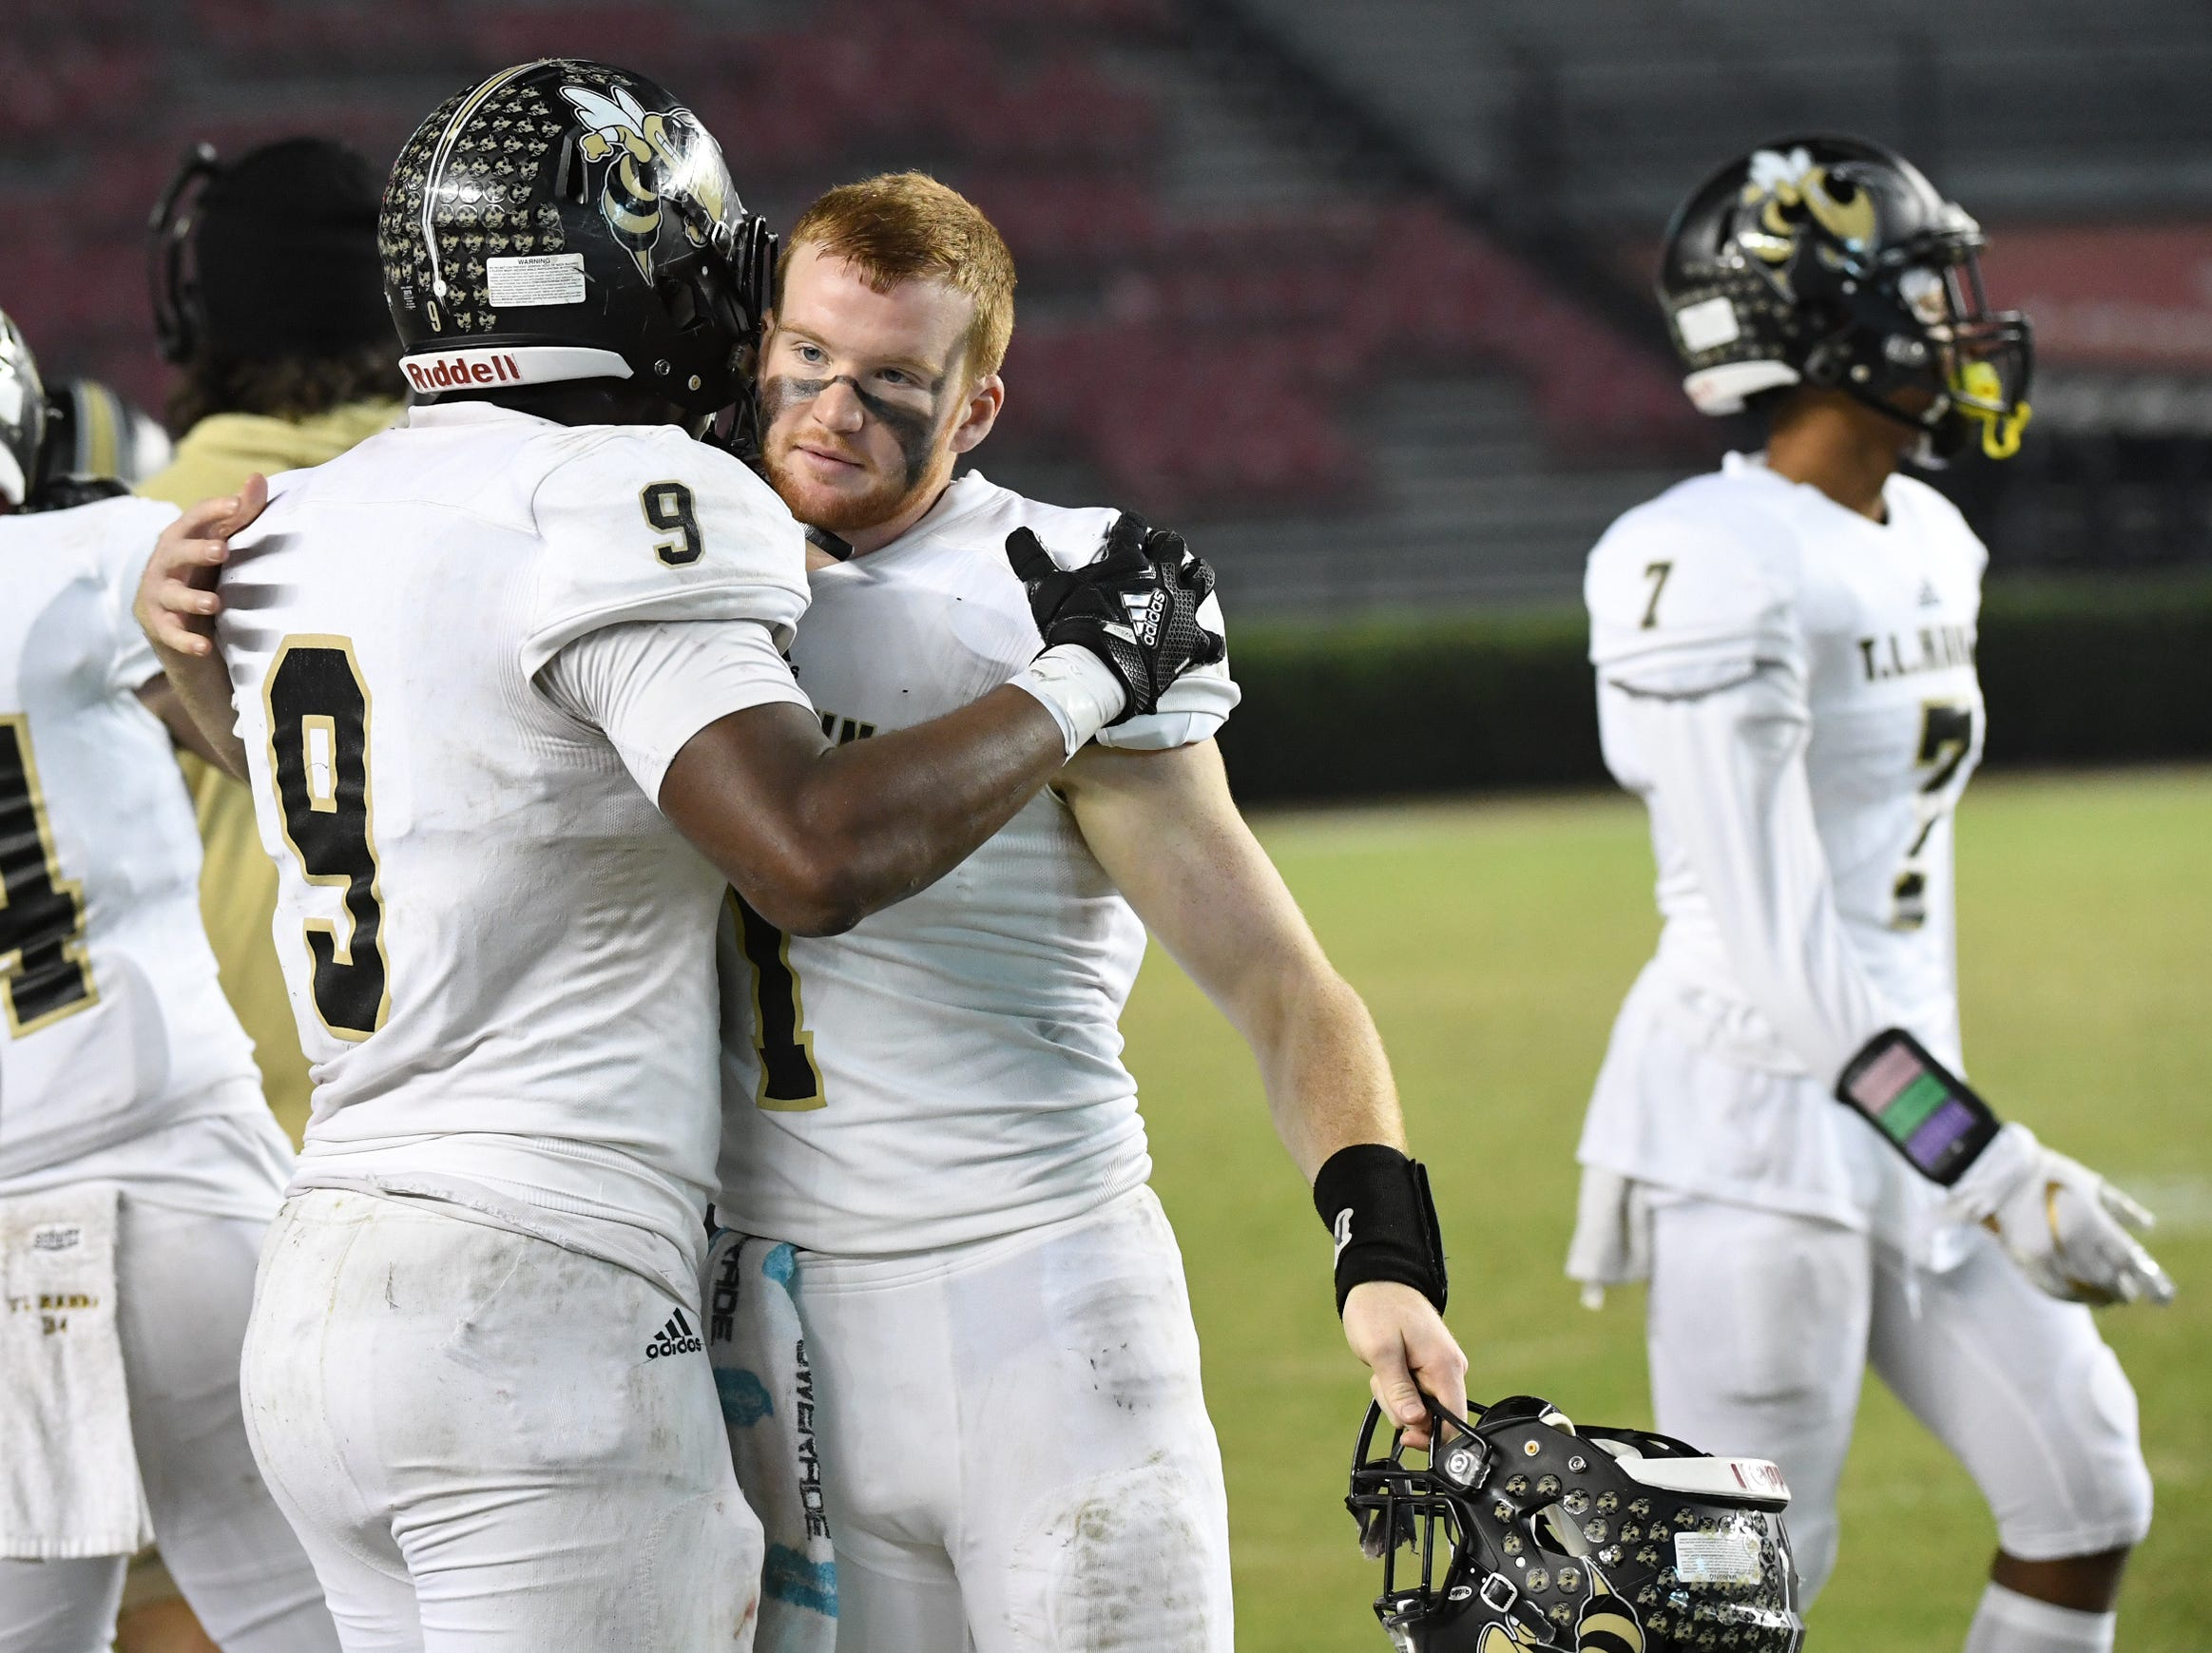 TL Hanna senior Jay Lagroon (9) and TL Hanna senior Alex Meredith (1) hug in the closing seconds during the fourth quarter of the Class AAAAA state championship game at Williams-Brice Stadium in Columbia Saturday, December 8, 2018.